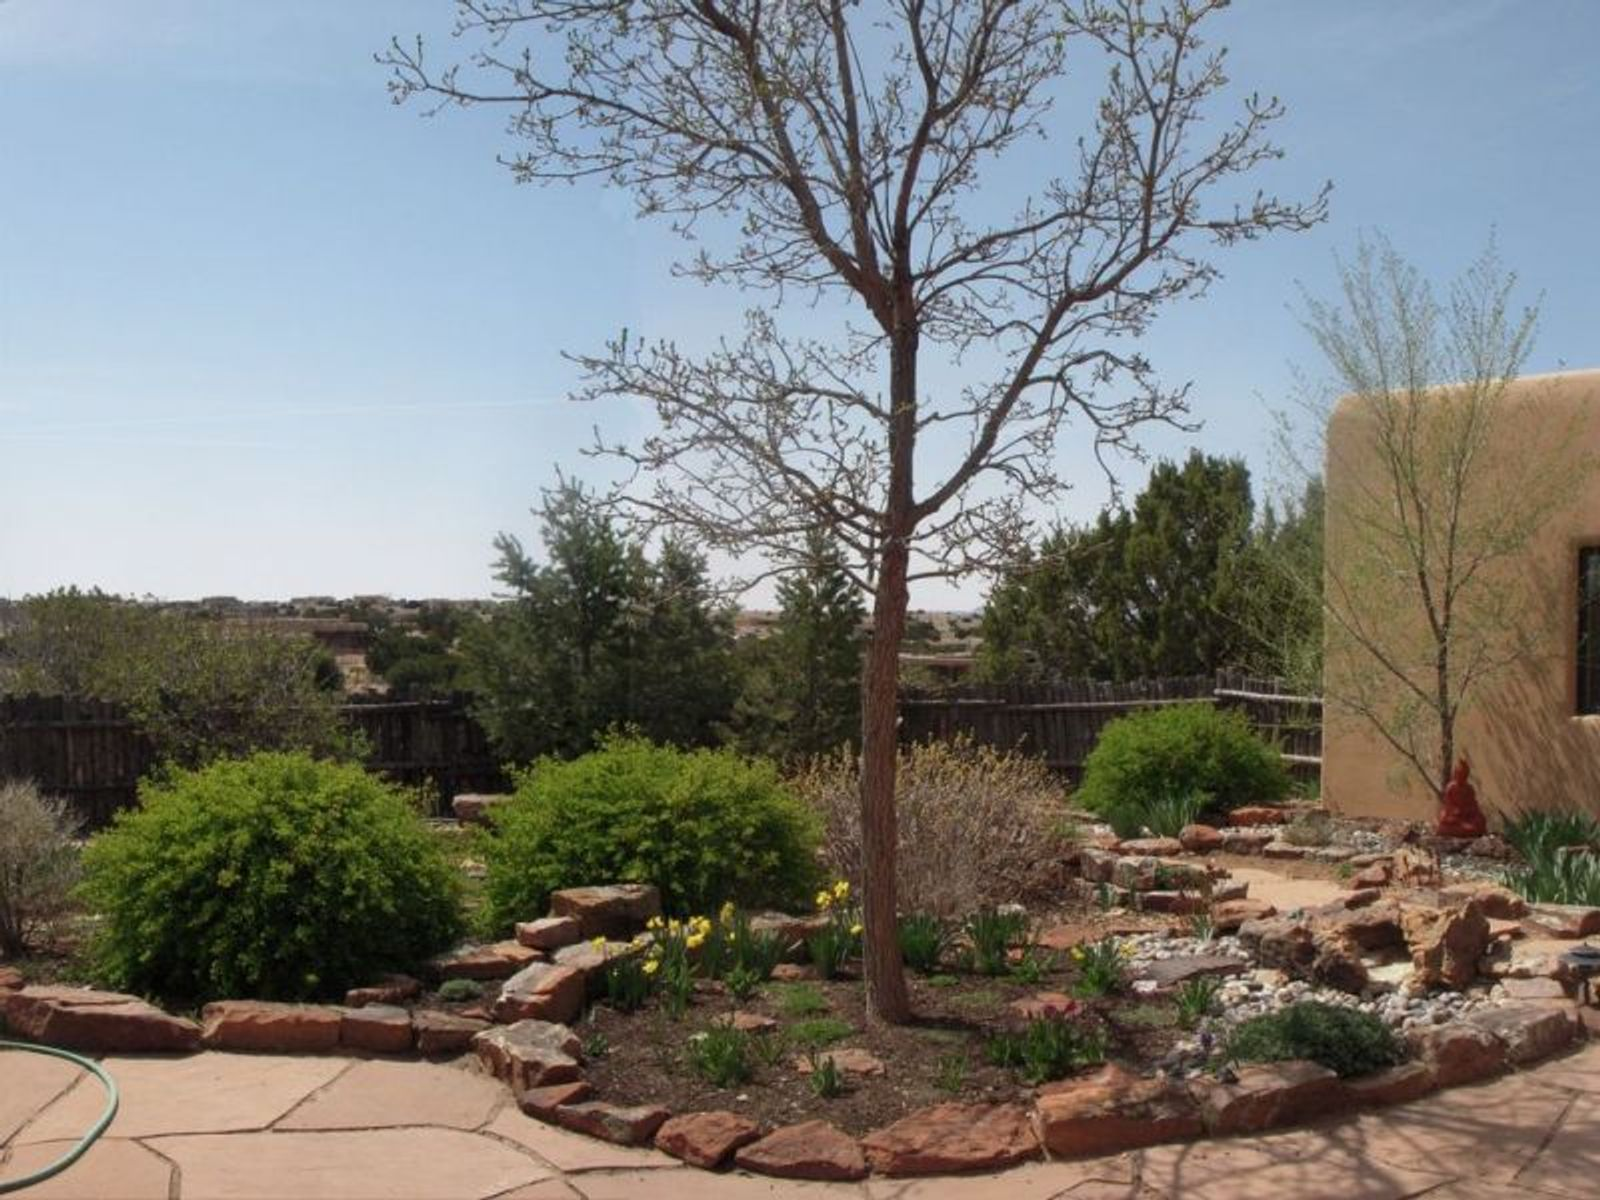 9 Tarro Road, Santa Fe NM Single Family Home - Santa Fe Real Estate